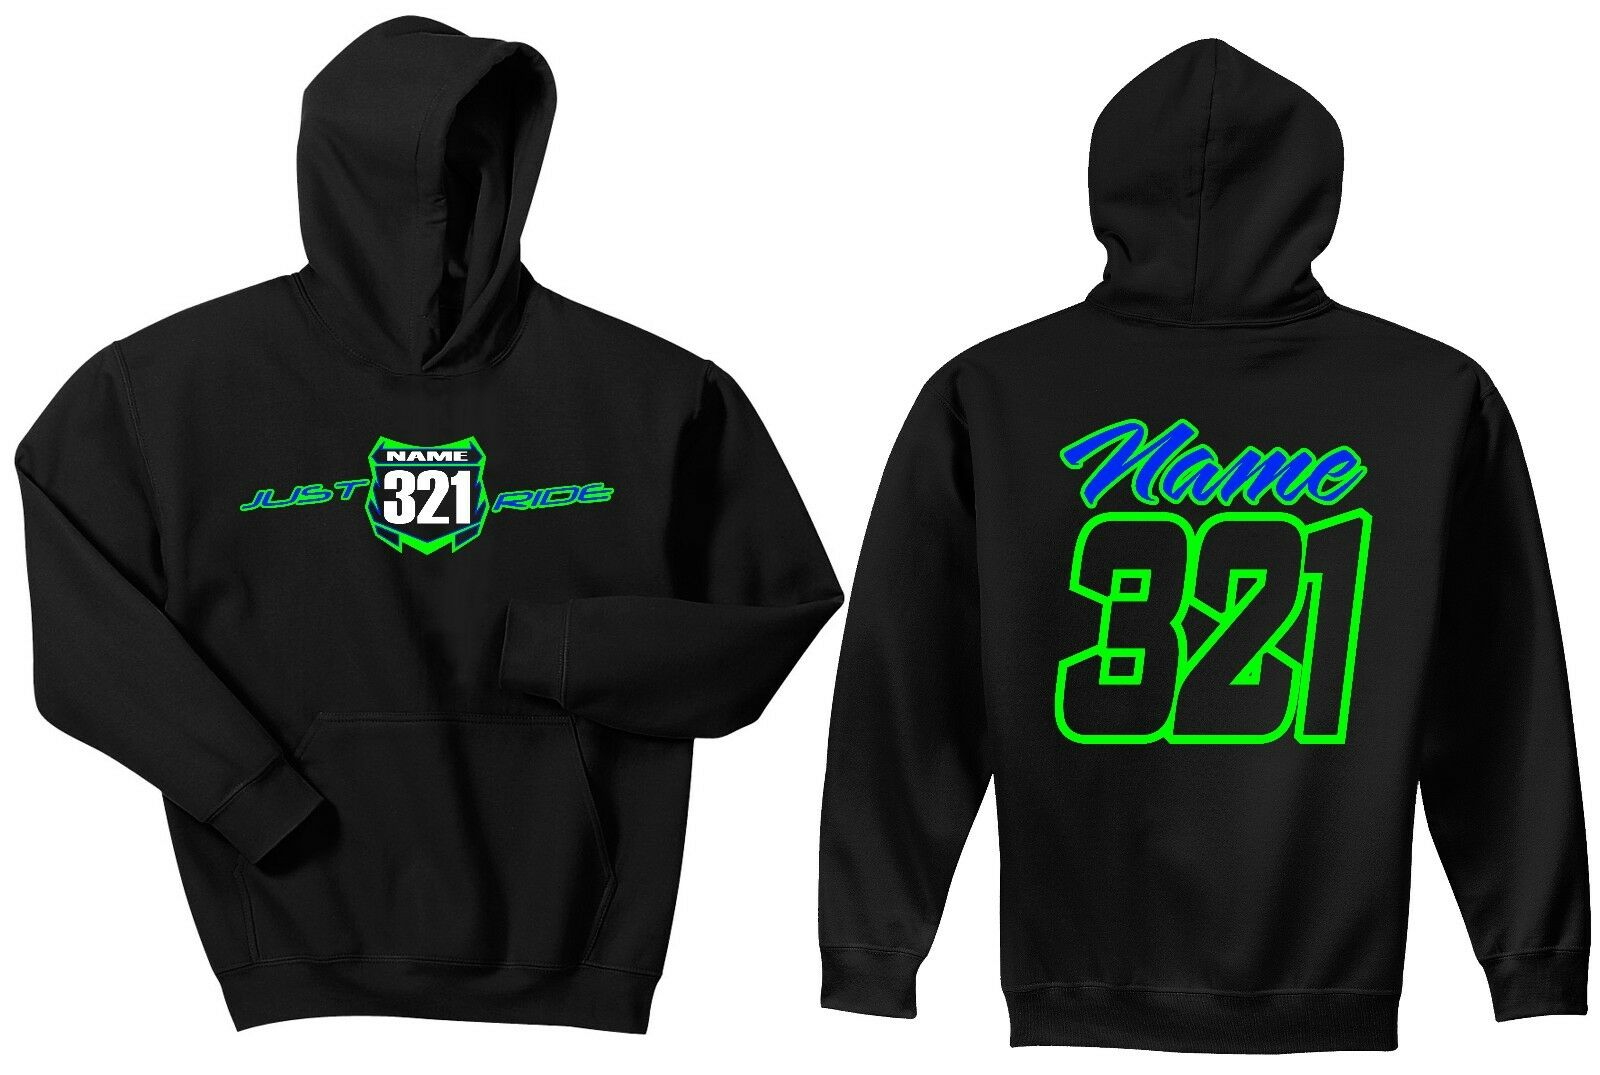 JUST RIDE CUSTOM NUMBER PLATE HOODIE SWEAT SHIRT MX MOTOCROSS KX KAWASAKI LIME